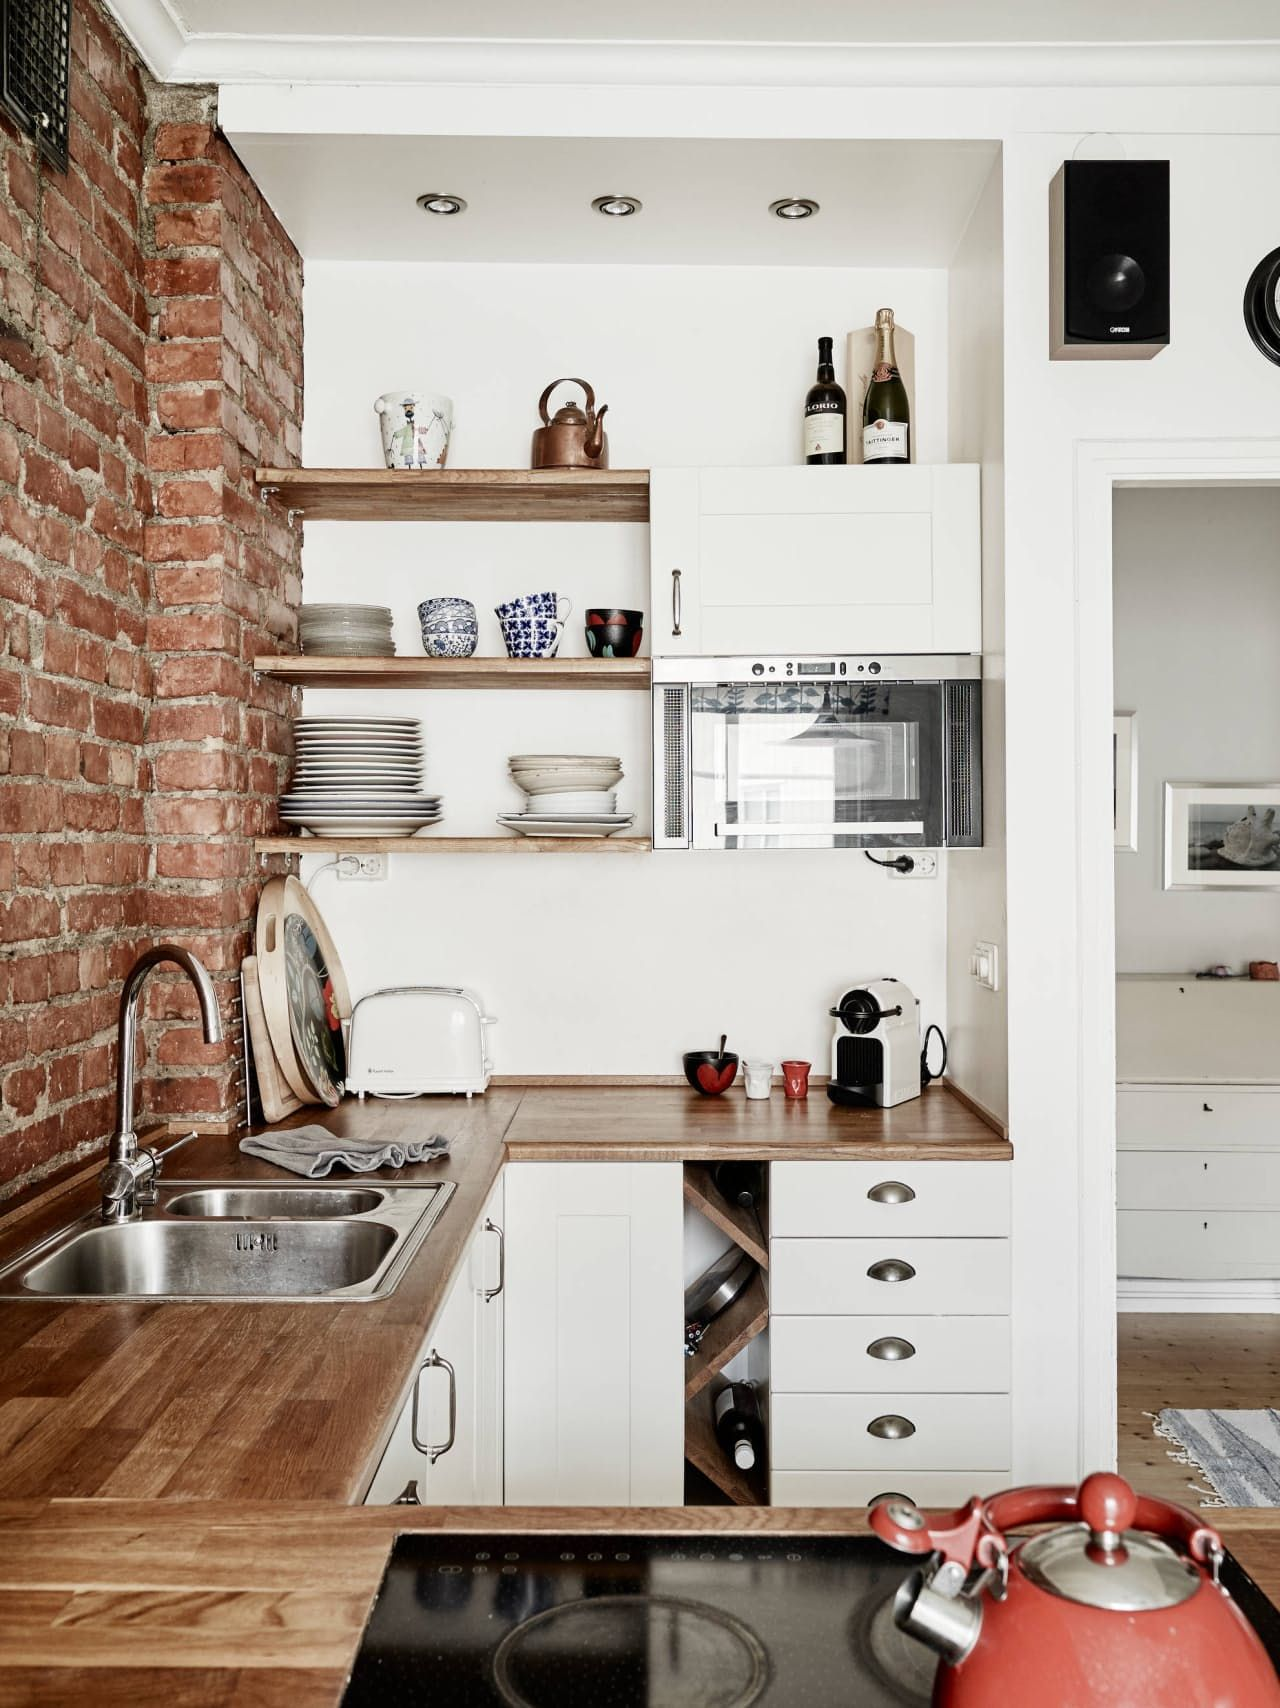 Pinterest And A Plan James Shares His Kitchen Inspiration Budget Kitchen Design Small Kitchen Cabinet Remodel Small Kitchen Decor